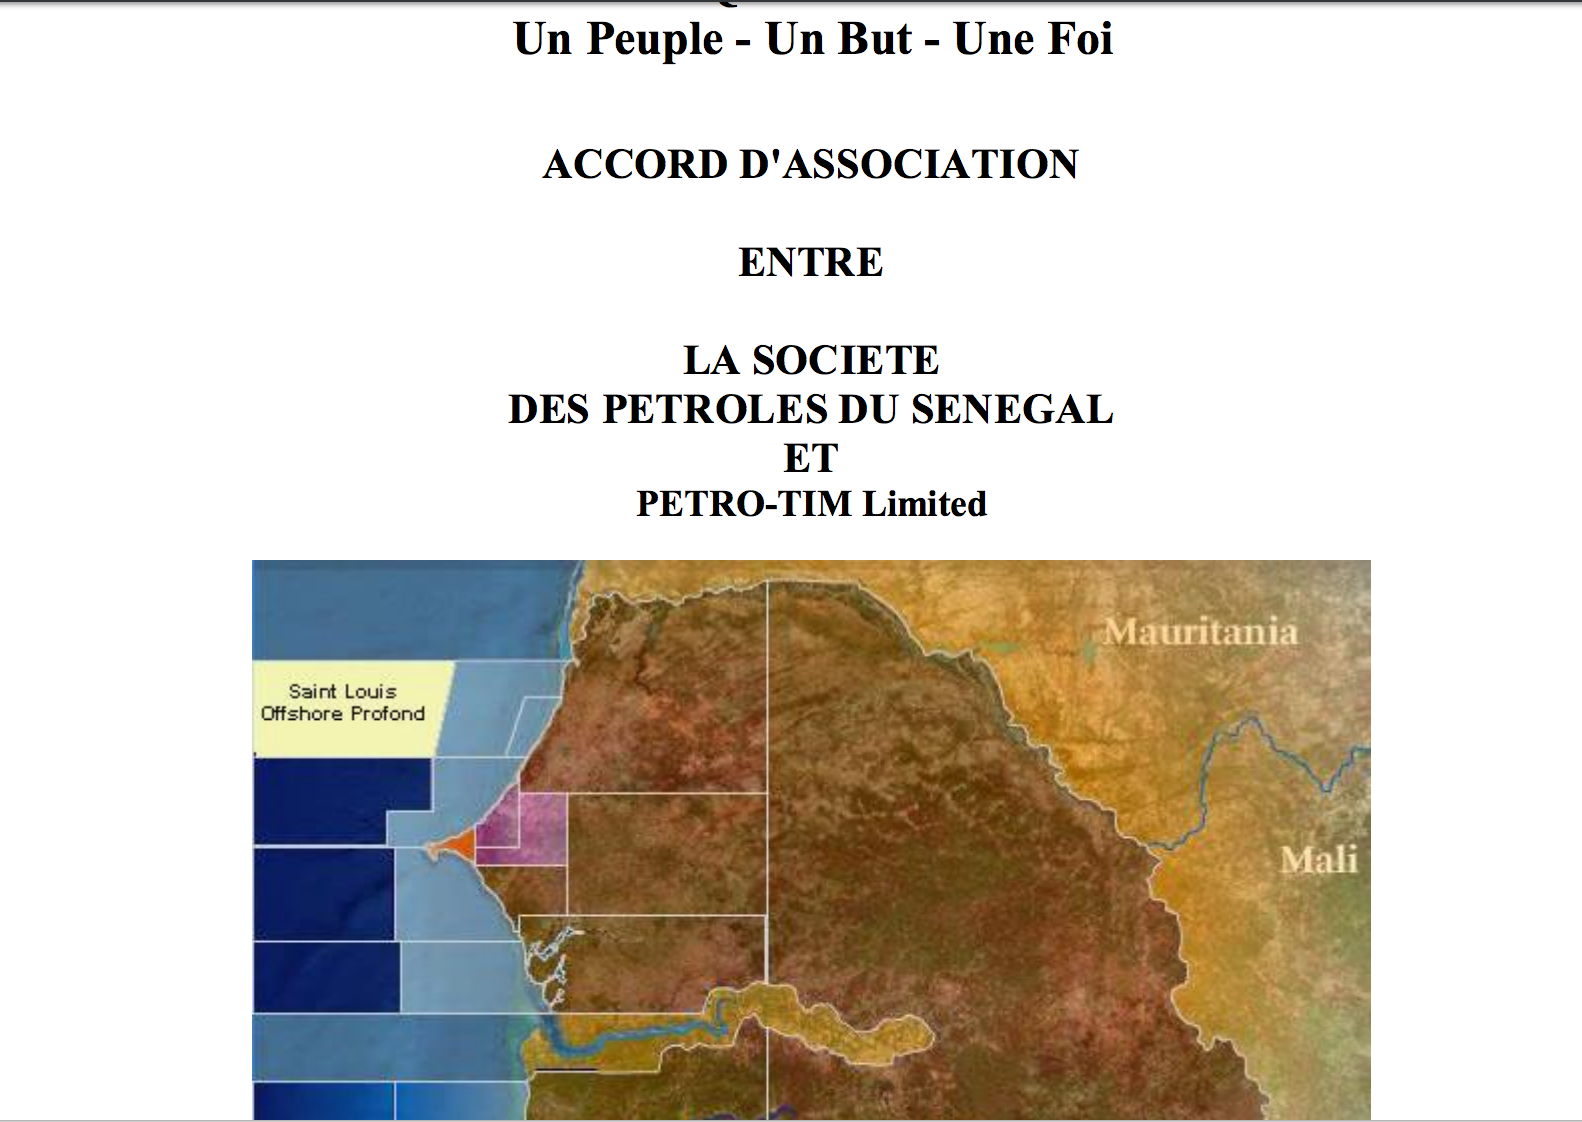 ACCORD D'ASSOCIATION ENTRE LA SOCIETE DES PETROLES DU SENEGAL ET PETRO-TIM Limited - ST LOUIS OFFSHORE PROFOND